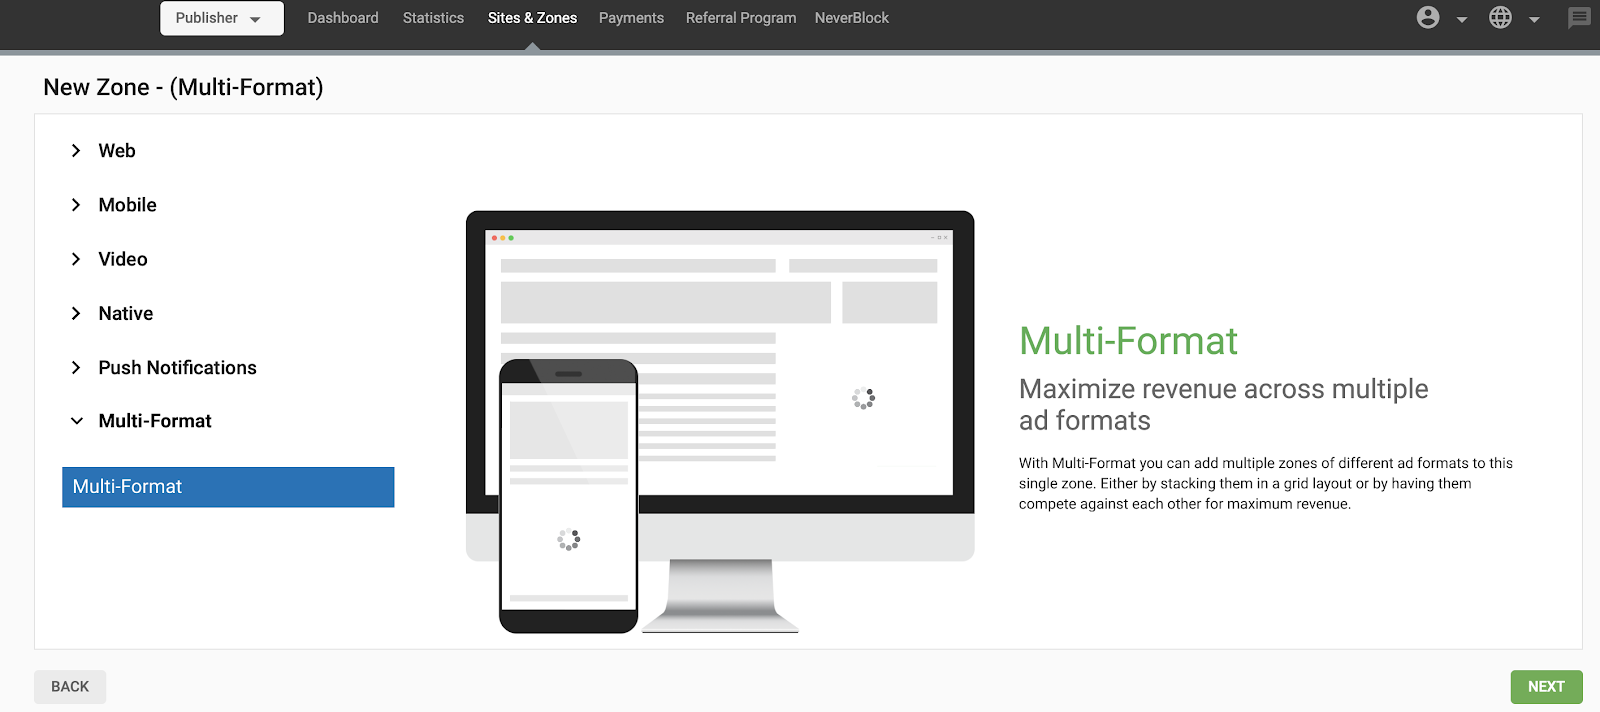 How to create a Multi-Format ad zone